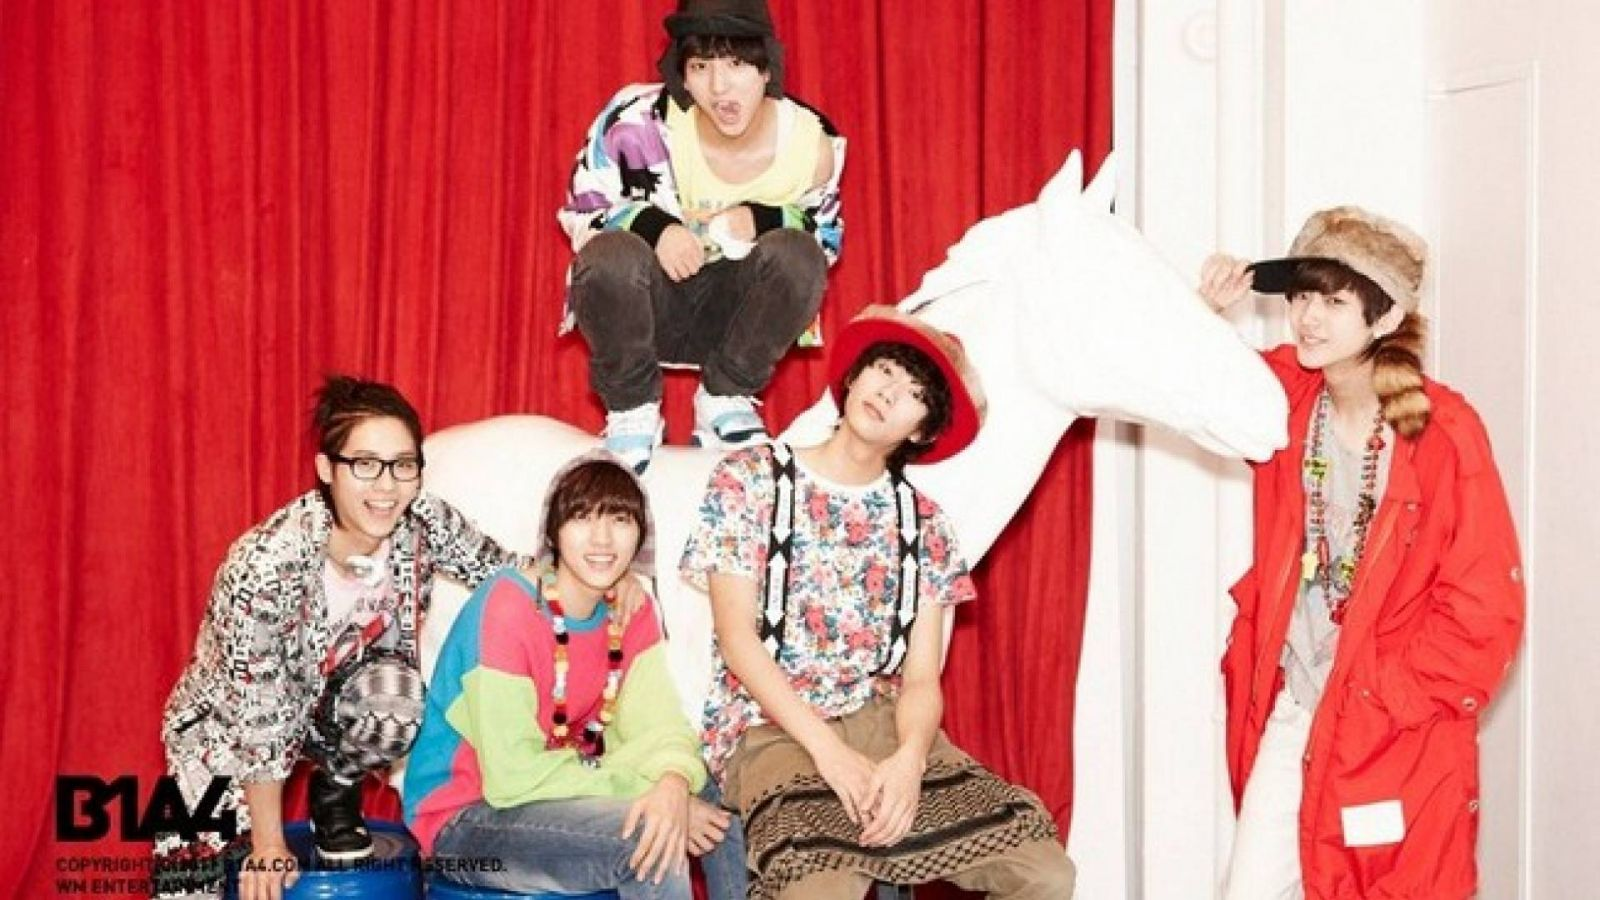 B1A4 © WM Entertainment